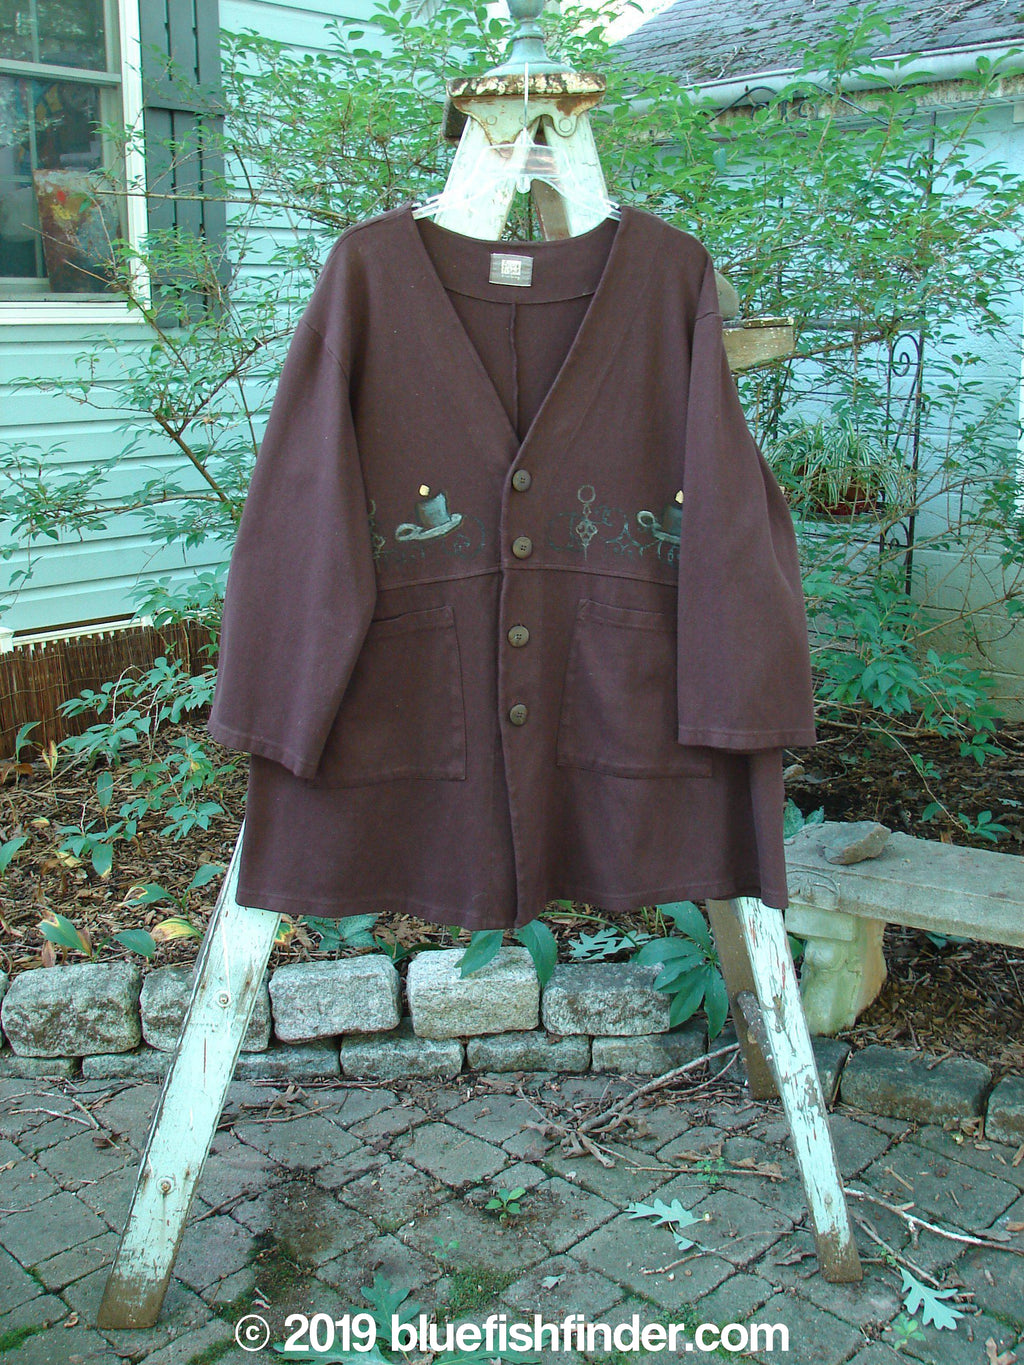 Vintage Blue Fish Clothing 1999 Interlock Steller Jacket Candle Deep Burgundy Size 1- Bluefishfinder.com